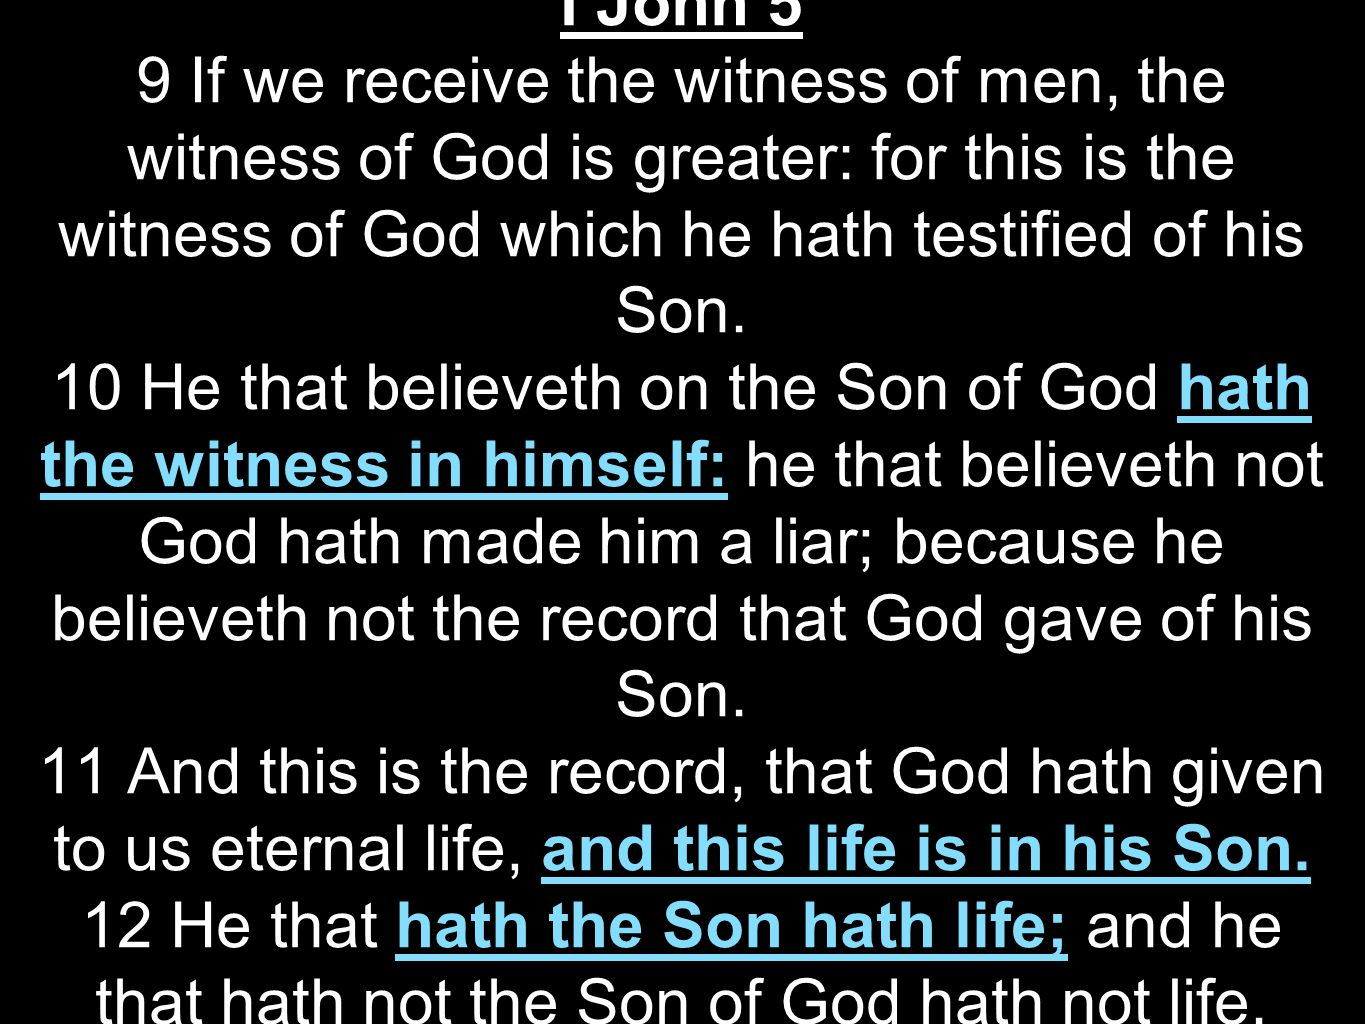 I John 5 9 If we receive the witness of men, the witness of God is greater: for this is the witness of God which he hath testified of his Son.